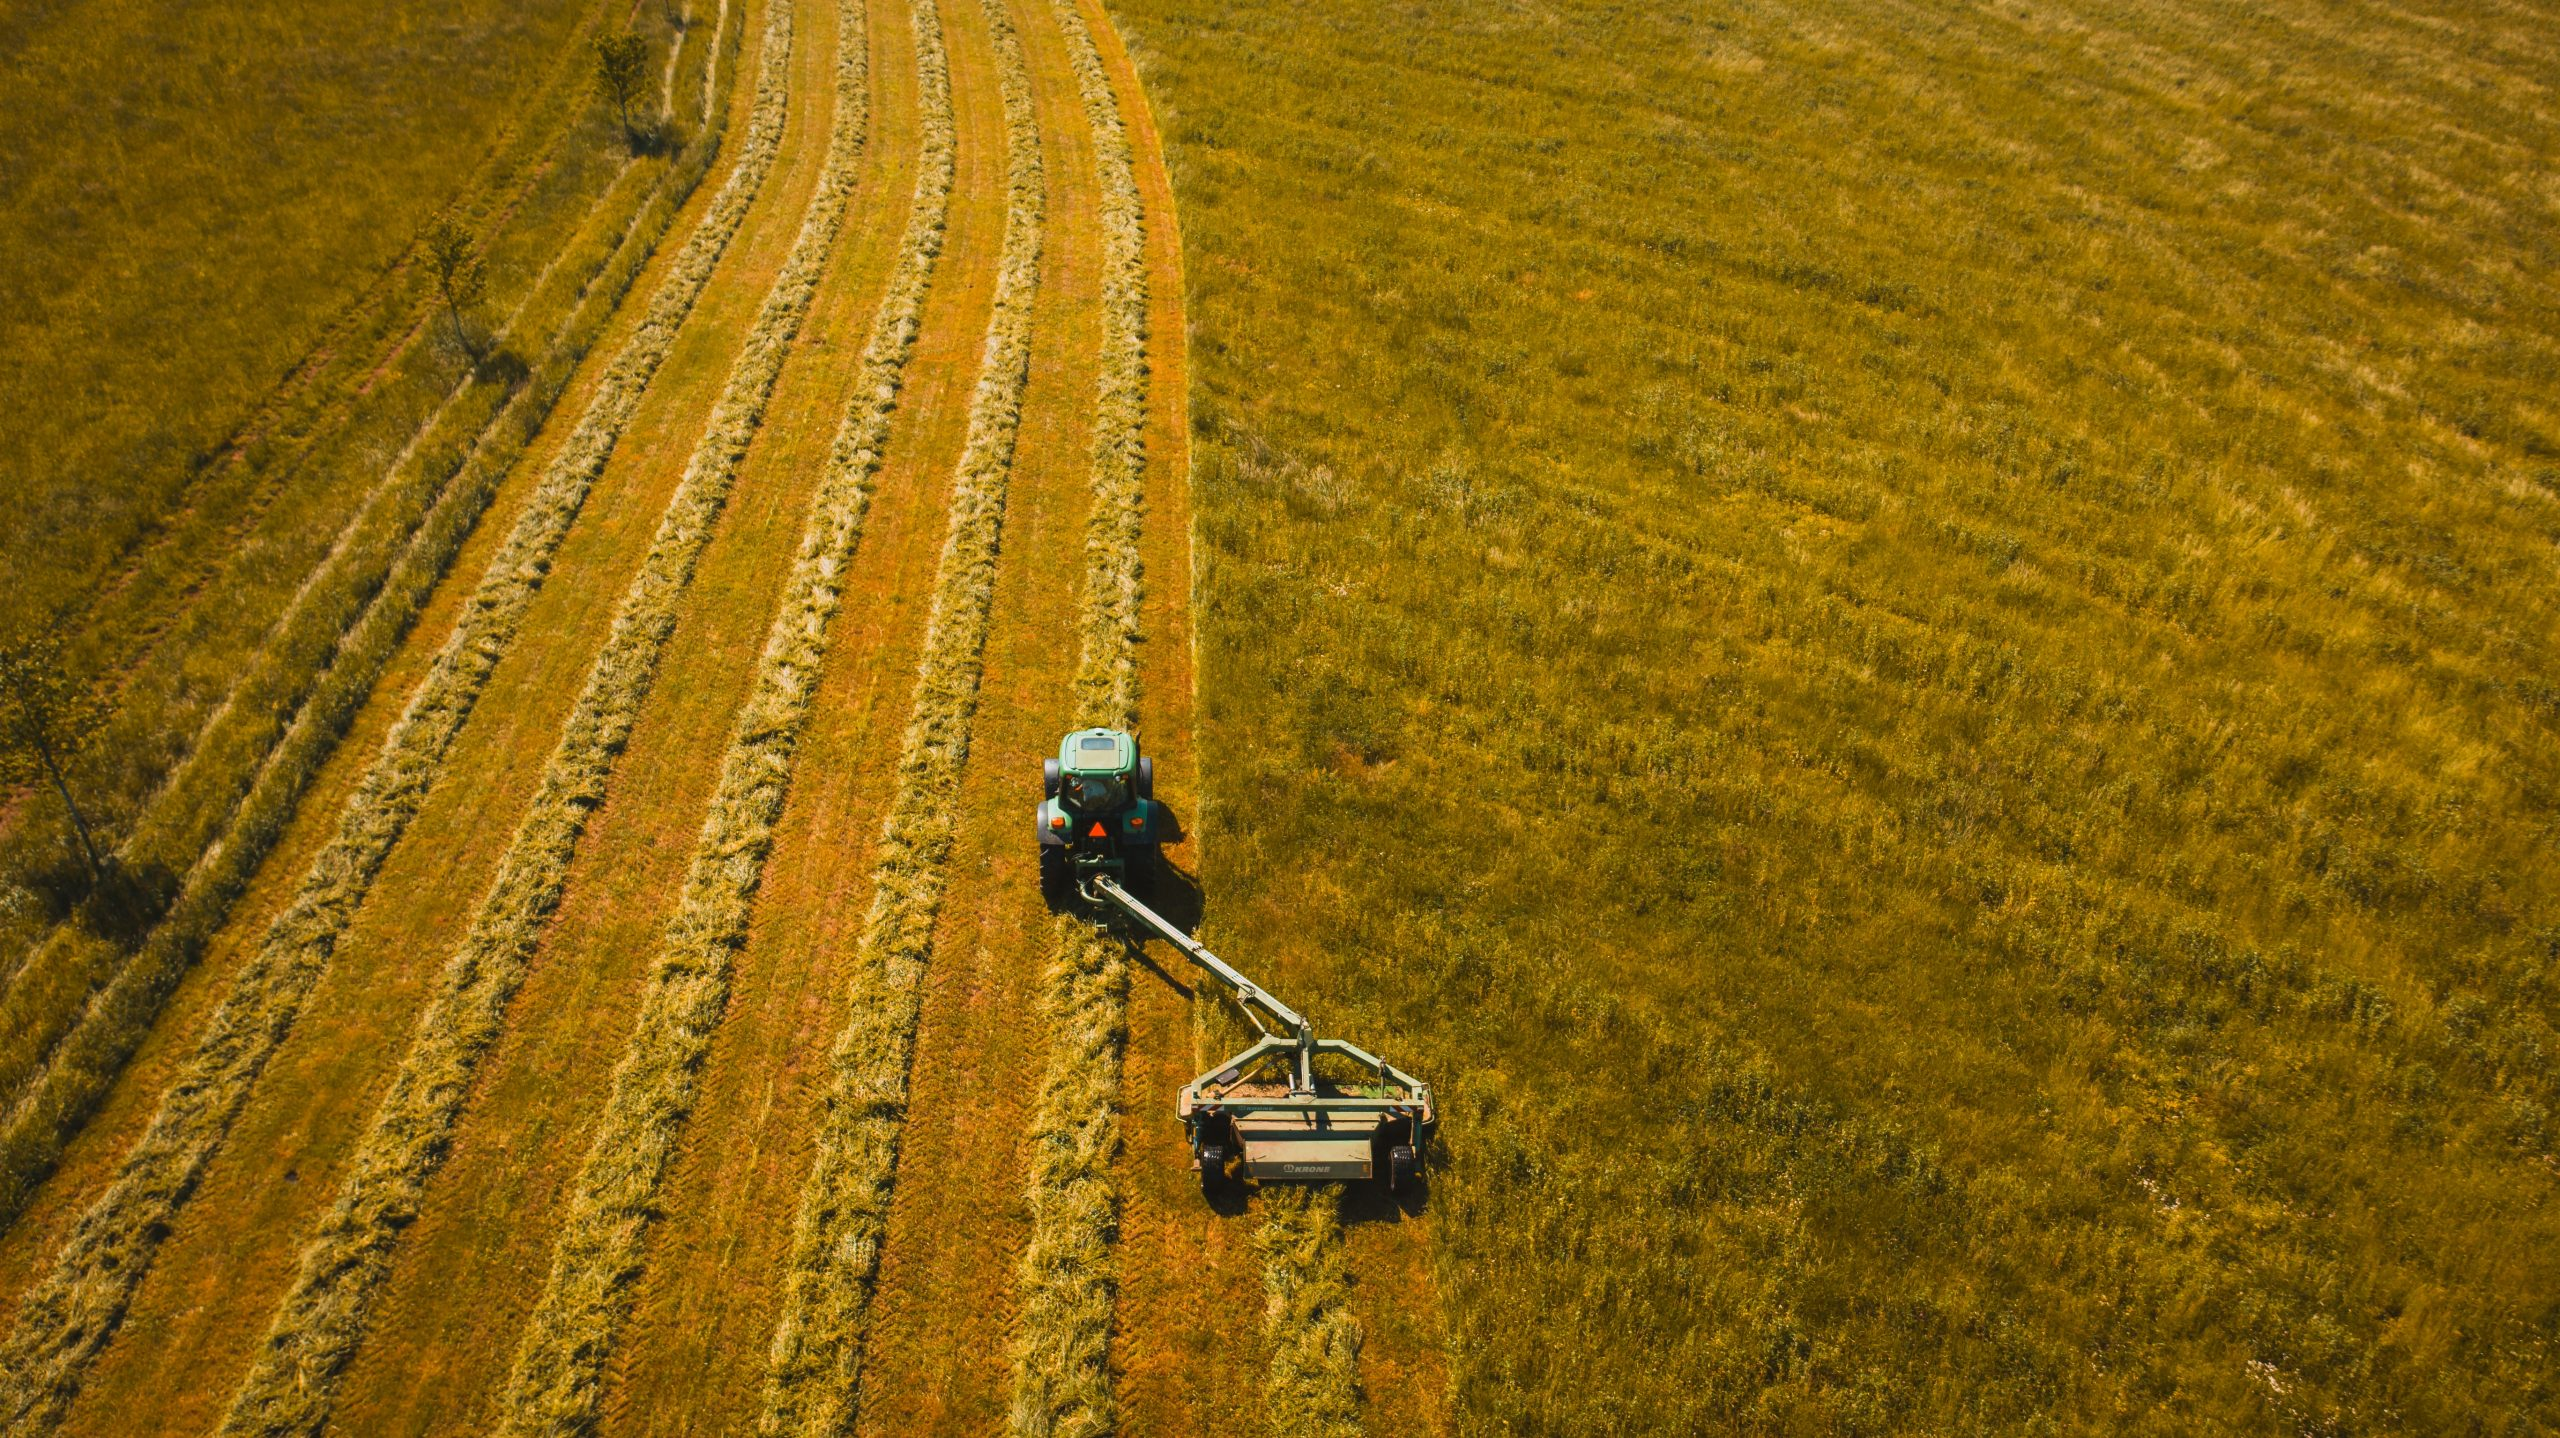 View from the sky | Drones and Agriculture.